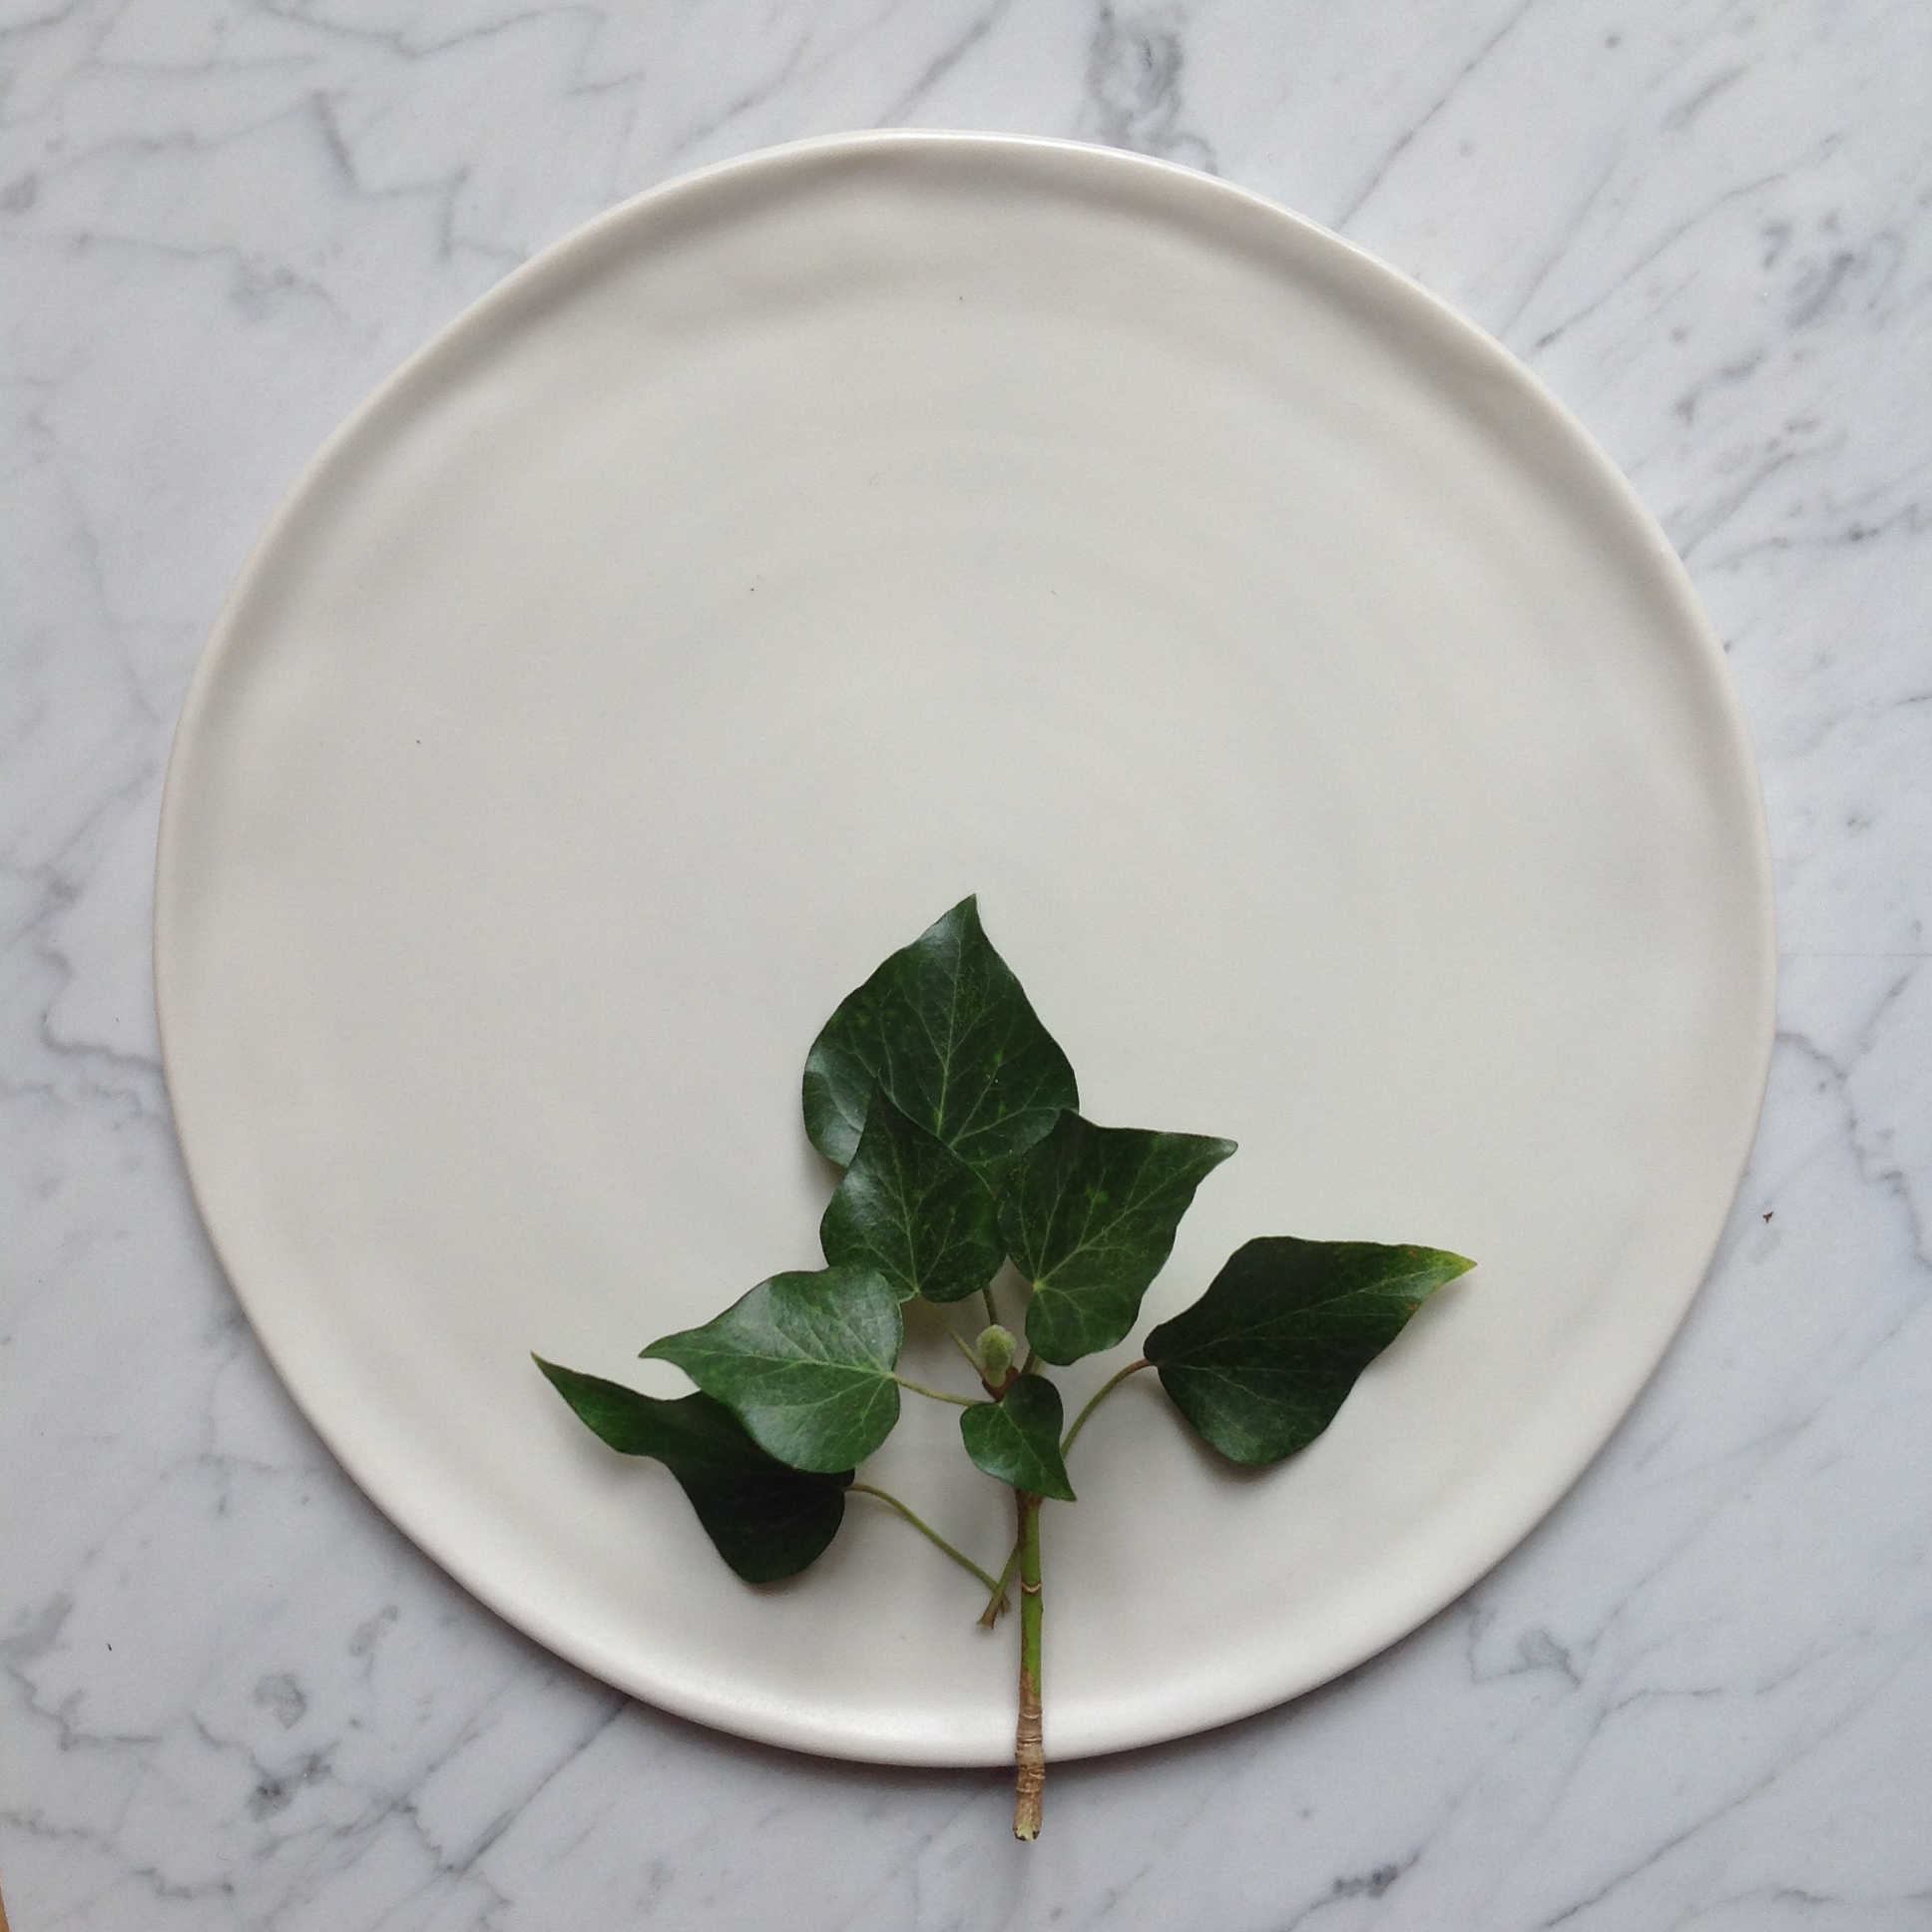 tableware- dinnerware Matt porcelain plate- dinnerware- tableware- handmade- hand thrown- by linda bloomfield & Handmade matt white plate | Linda Bloomfield